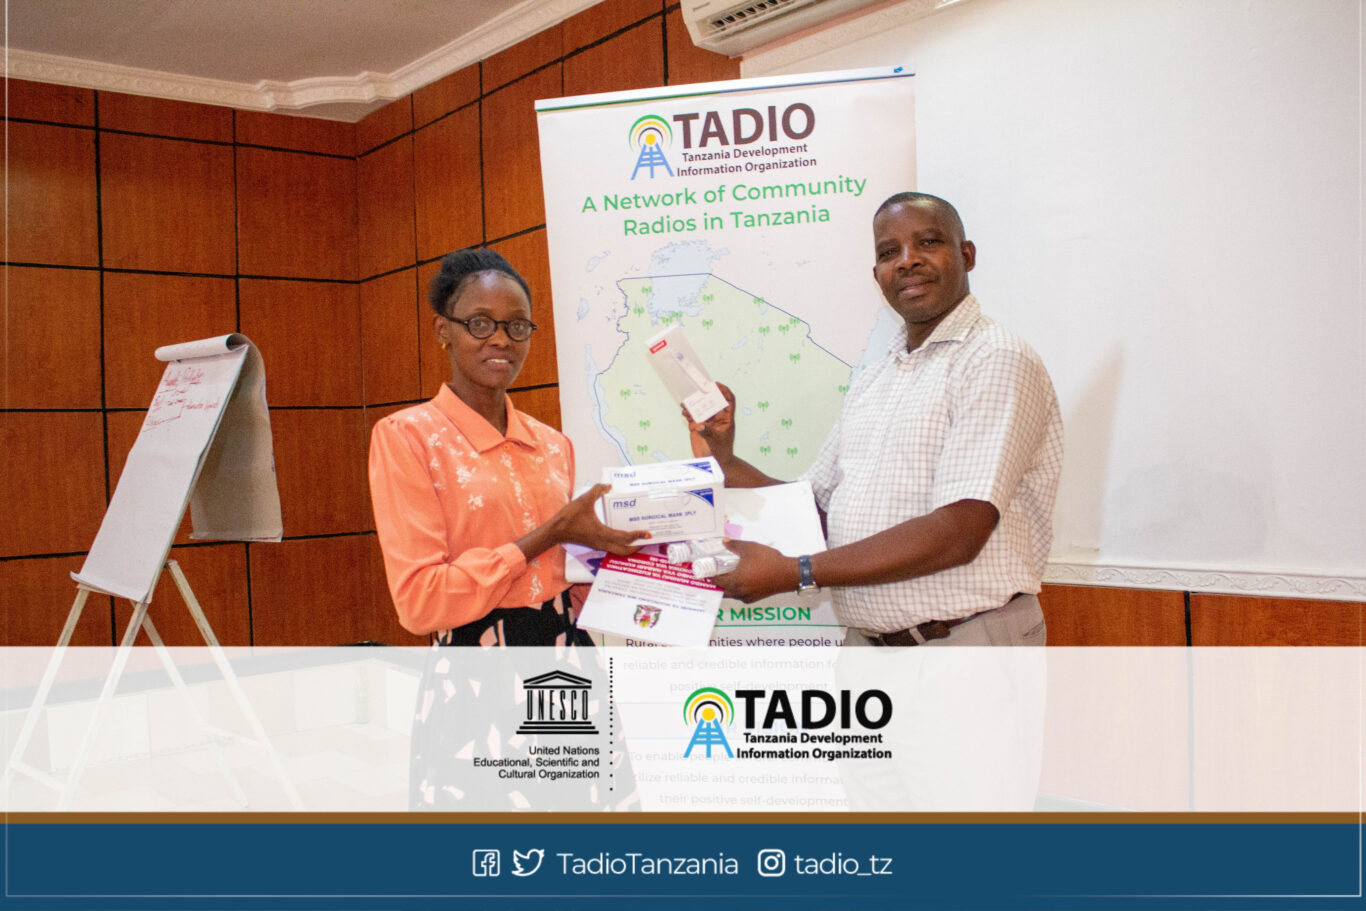 Dodoma FM Manager, Ms. Zania Miraji receiving health protection equipment from TADIO Chairperson, Mr. Prosper Kwigize